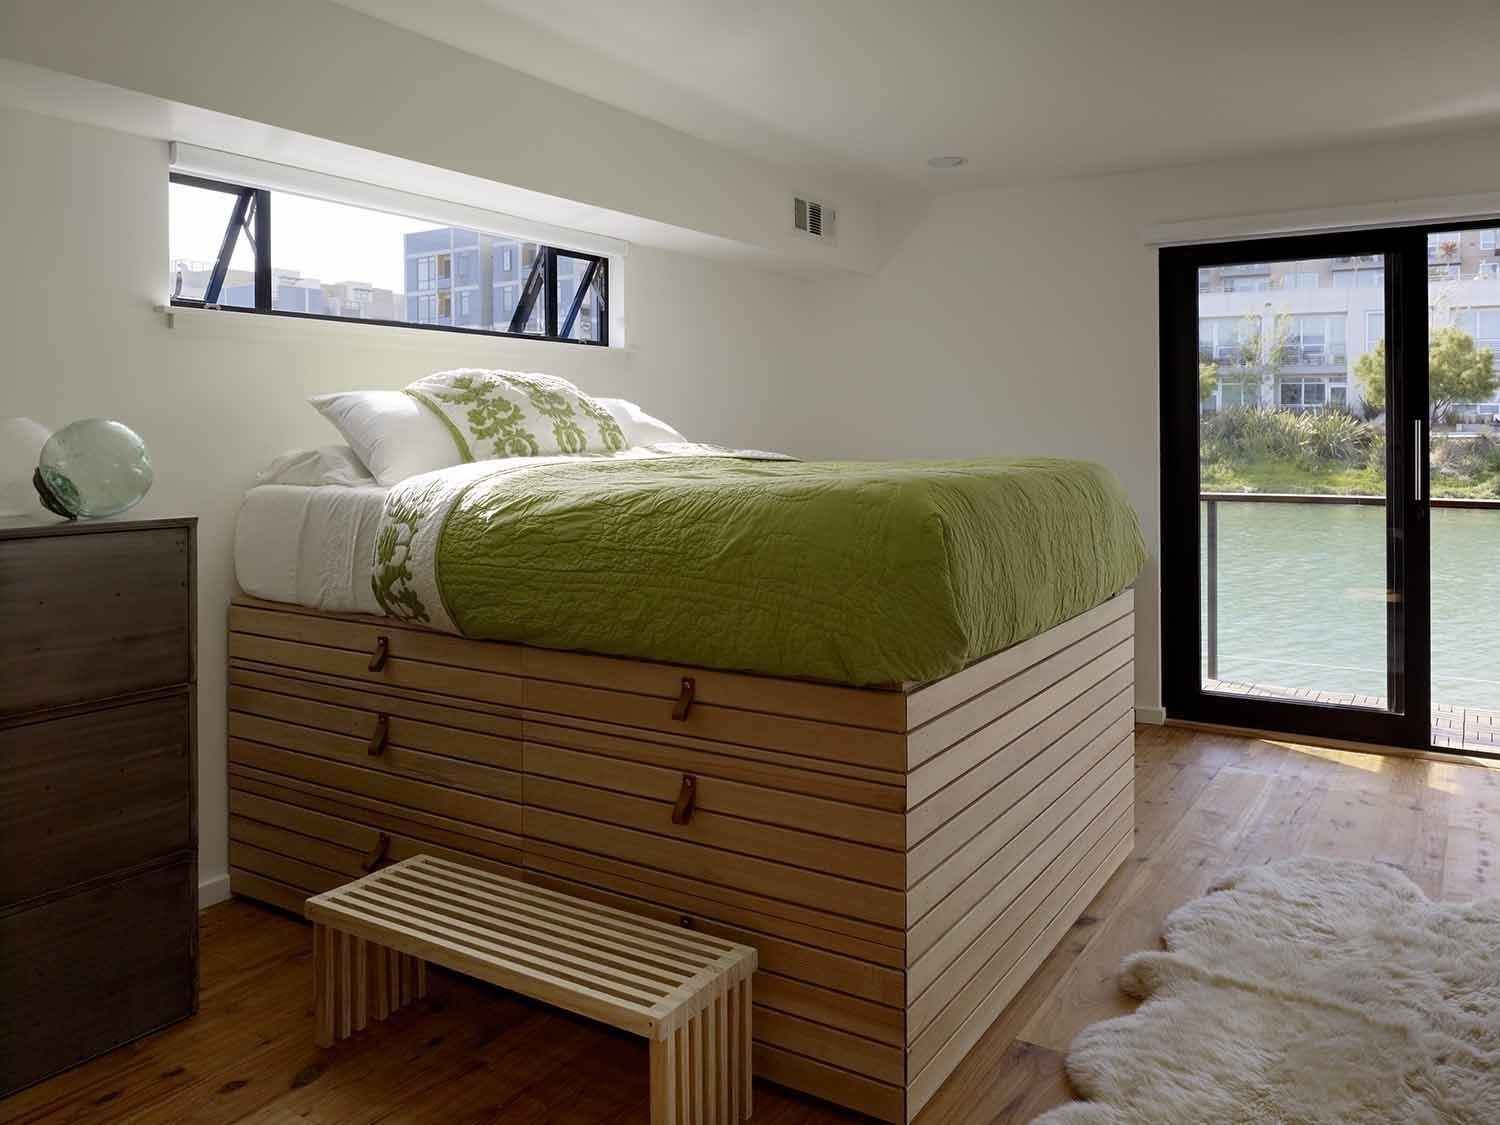 Bedroom and Bed In the second floor master bedroom, a custom captain's bed designed by the homeowner, features drawers and storage underneath. Its towering height allows for views out the nearby window.  Best Photos from Like a Loft on Water